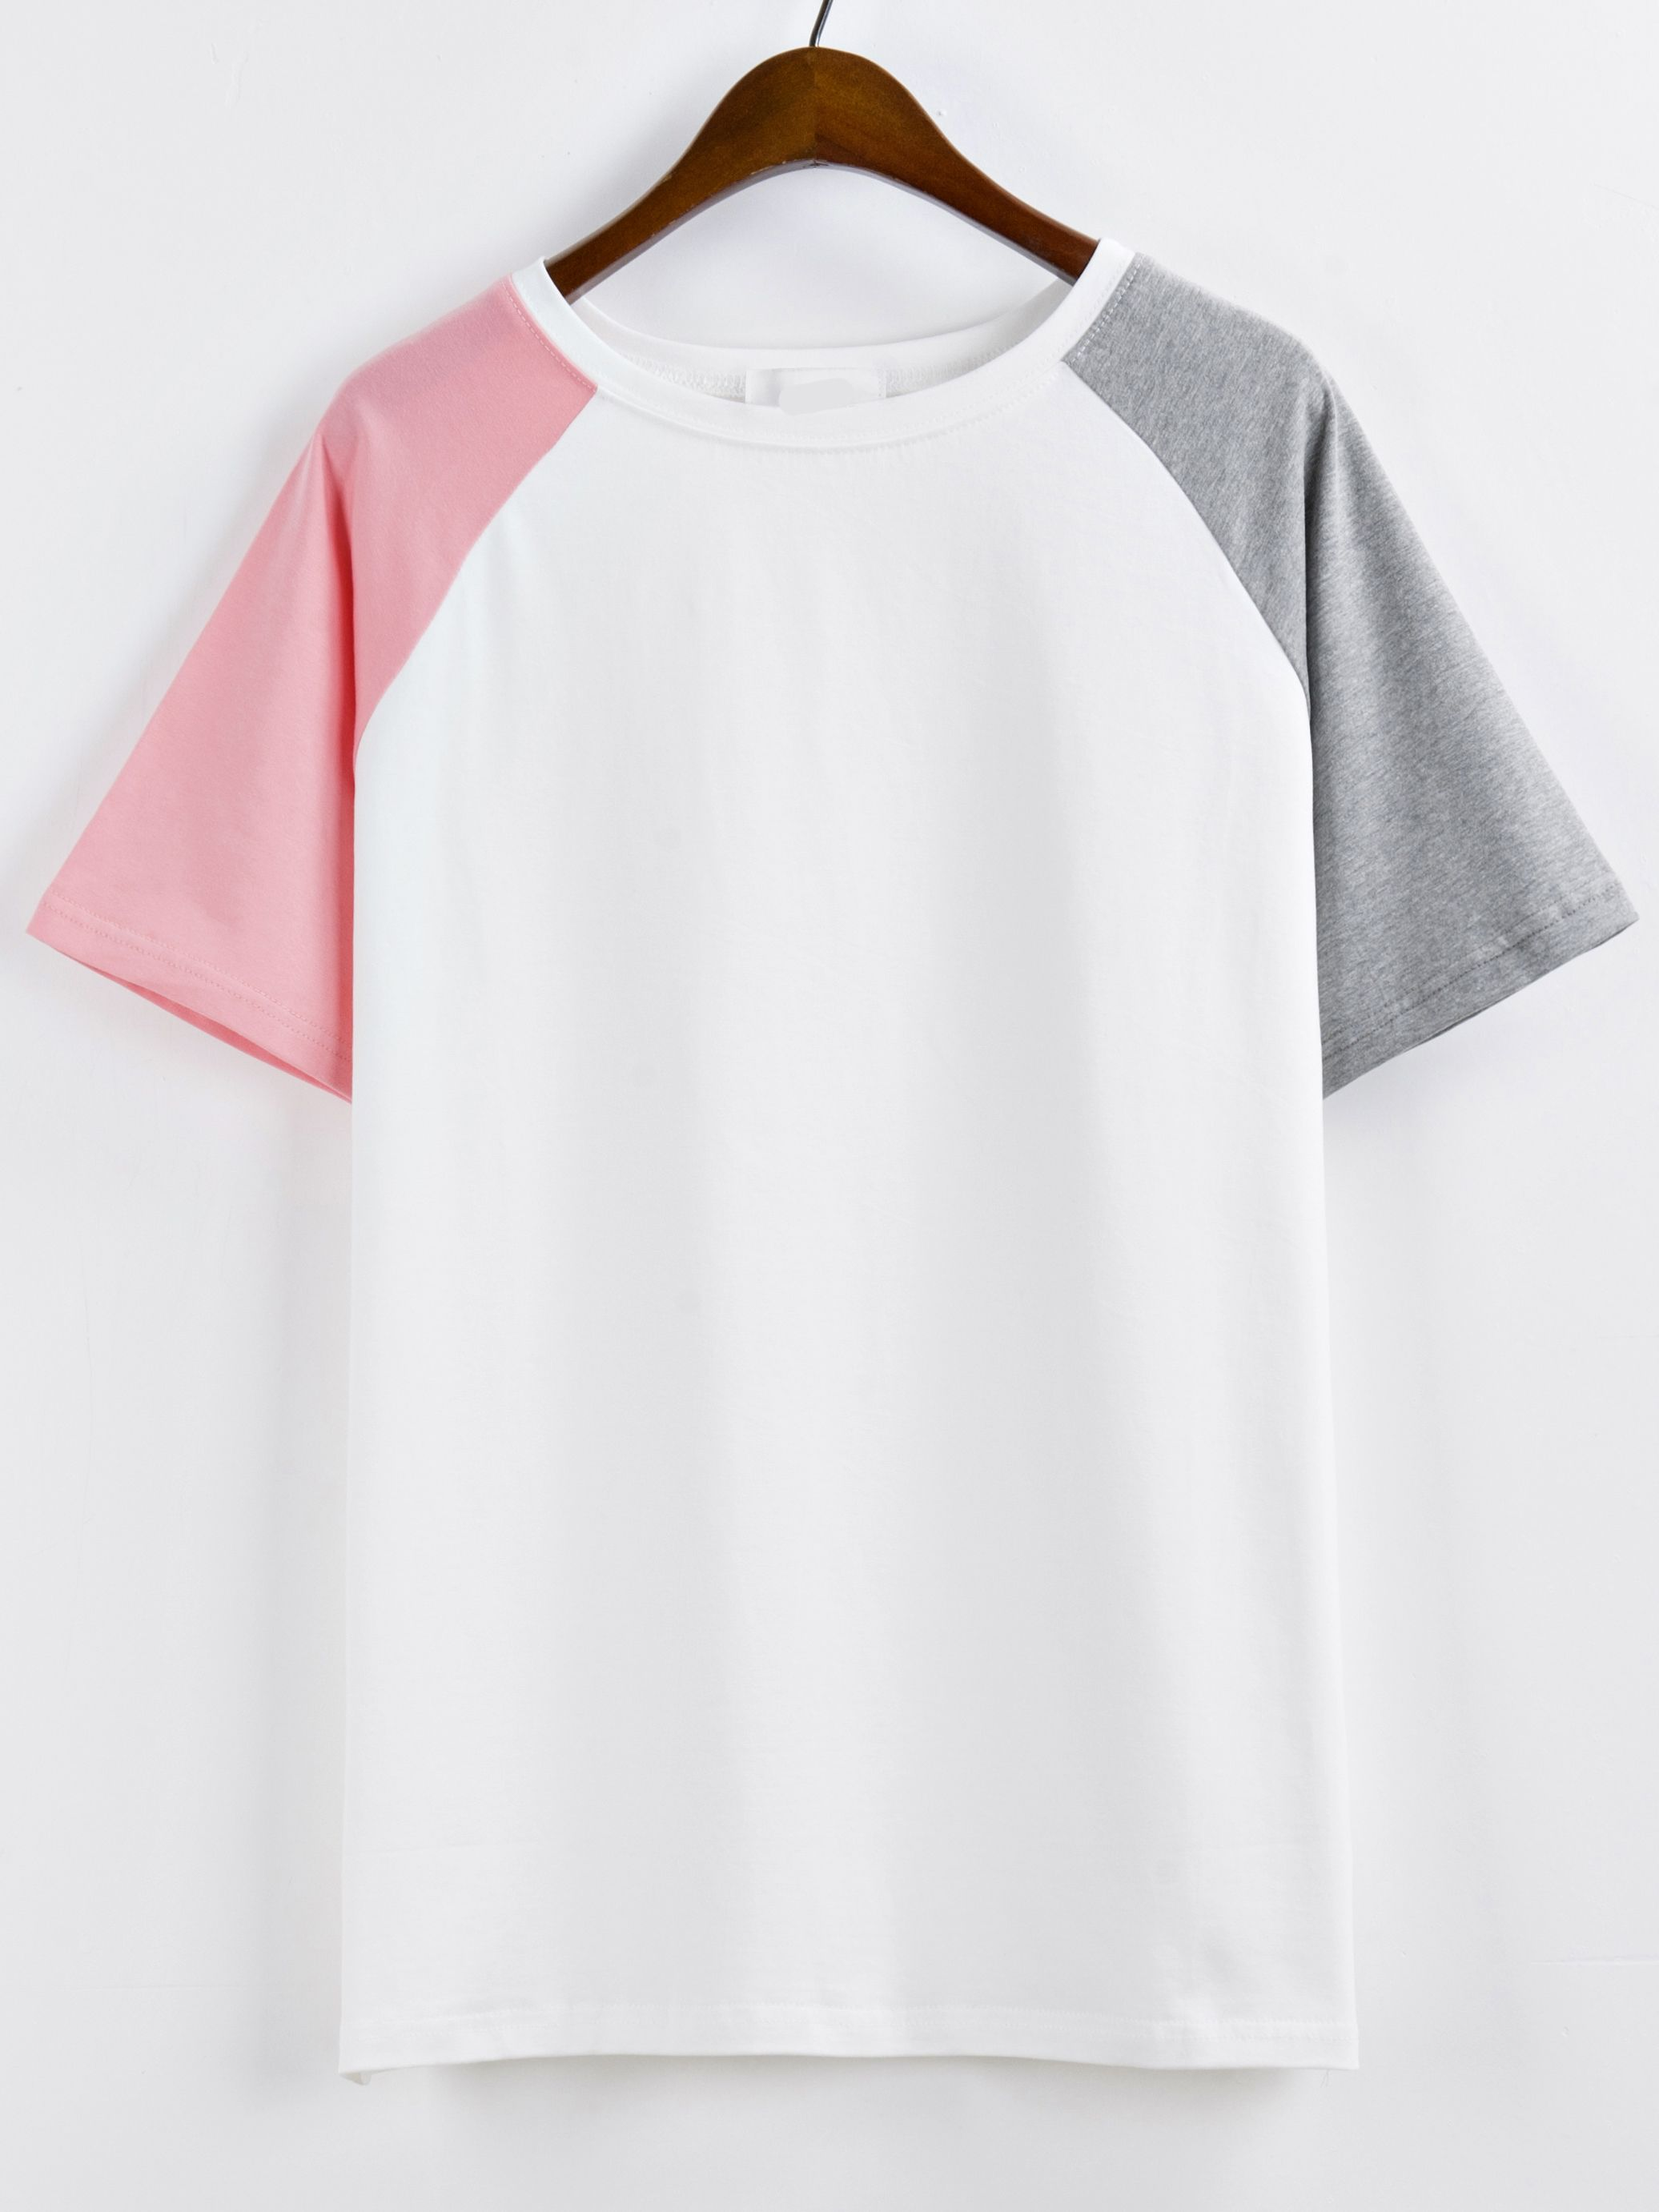 954e216cb192 Shop Raglan Sleeve Color-block T-shirt online. SheIn offers Raglan Sleeve  Color-block T-shirt & more to fit your fashionable needs.